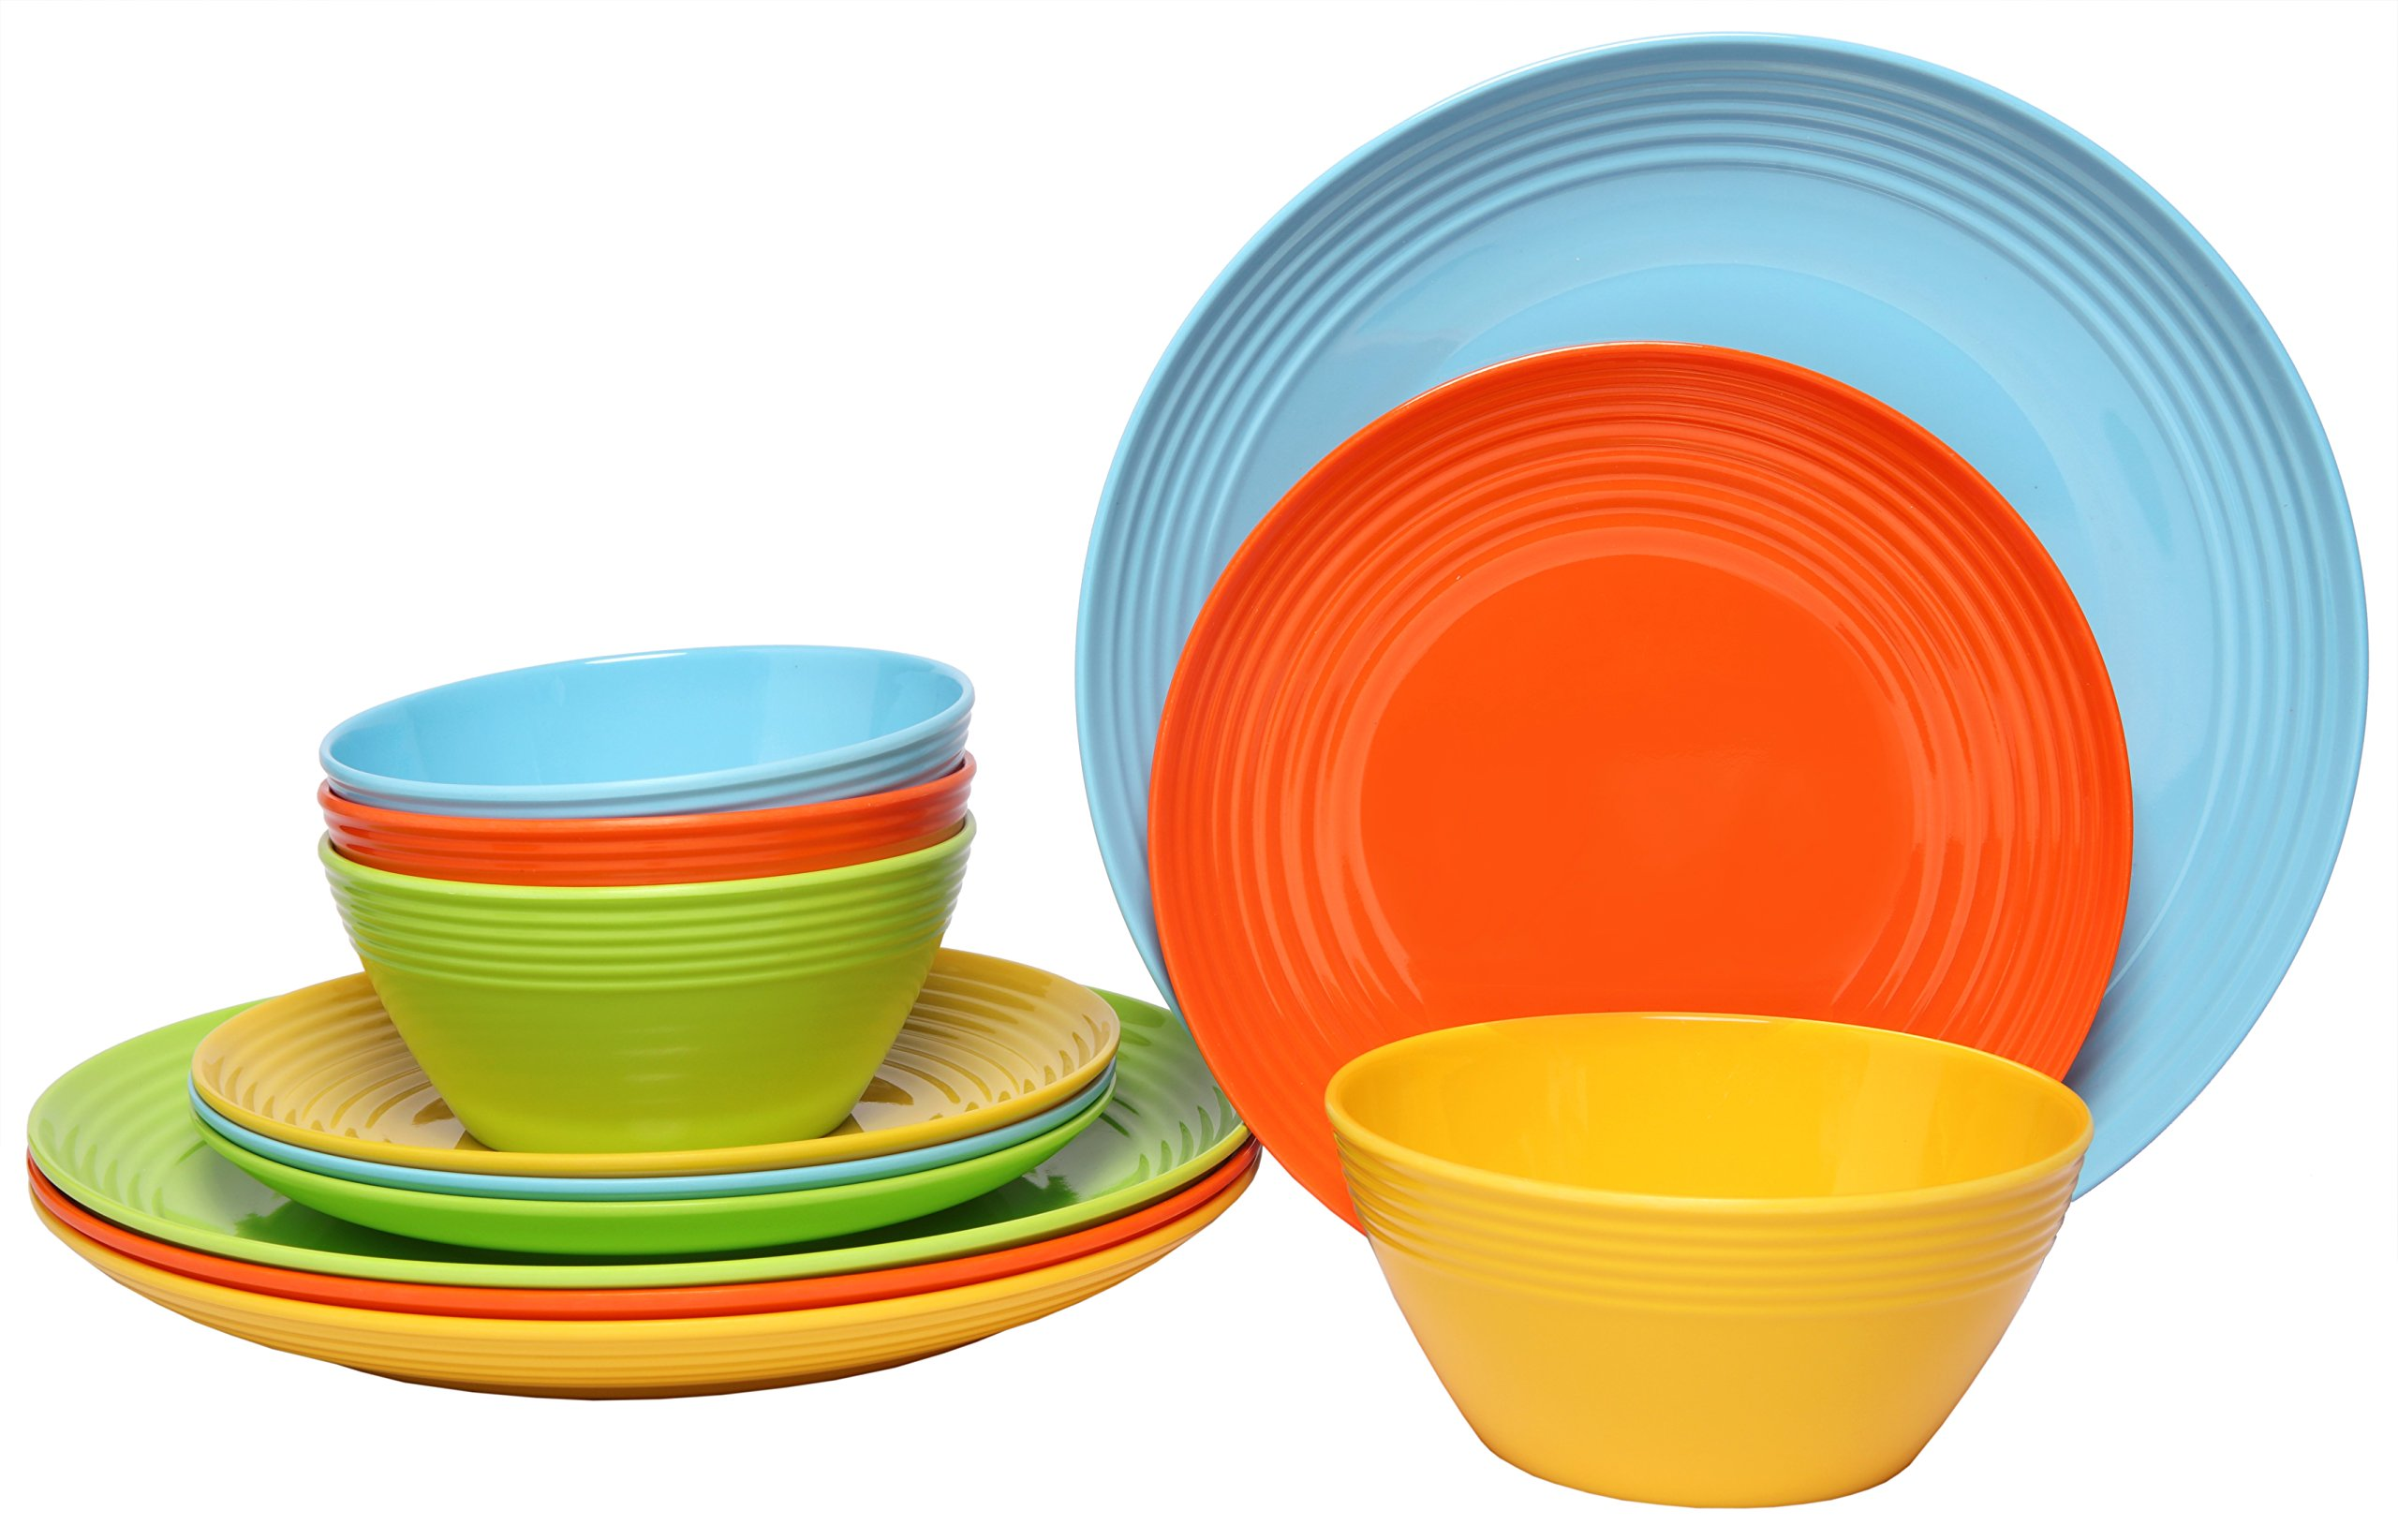 Melange Dinnerware Collection Shatter Proof Chip Resistant